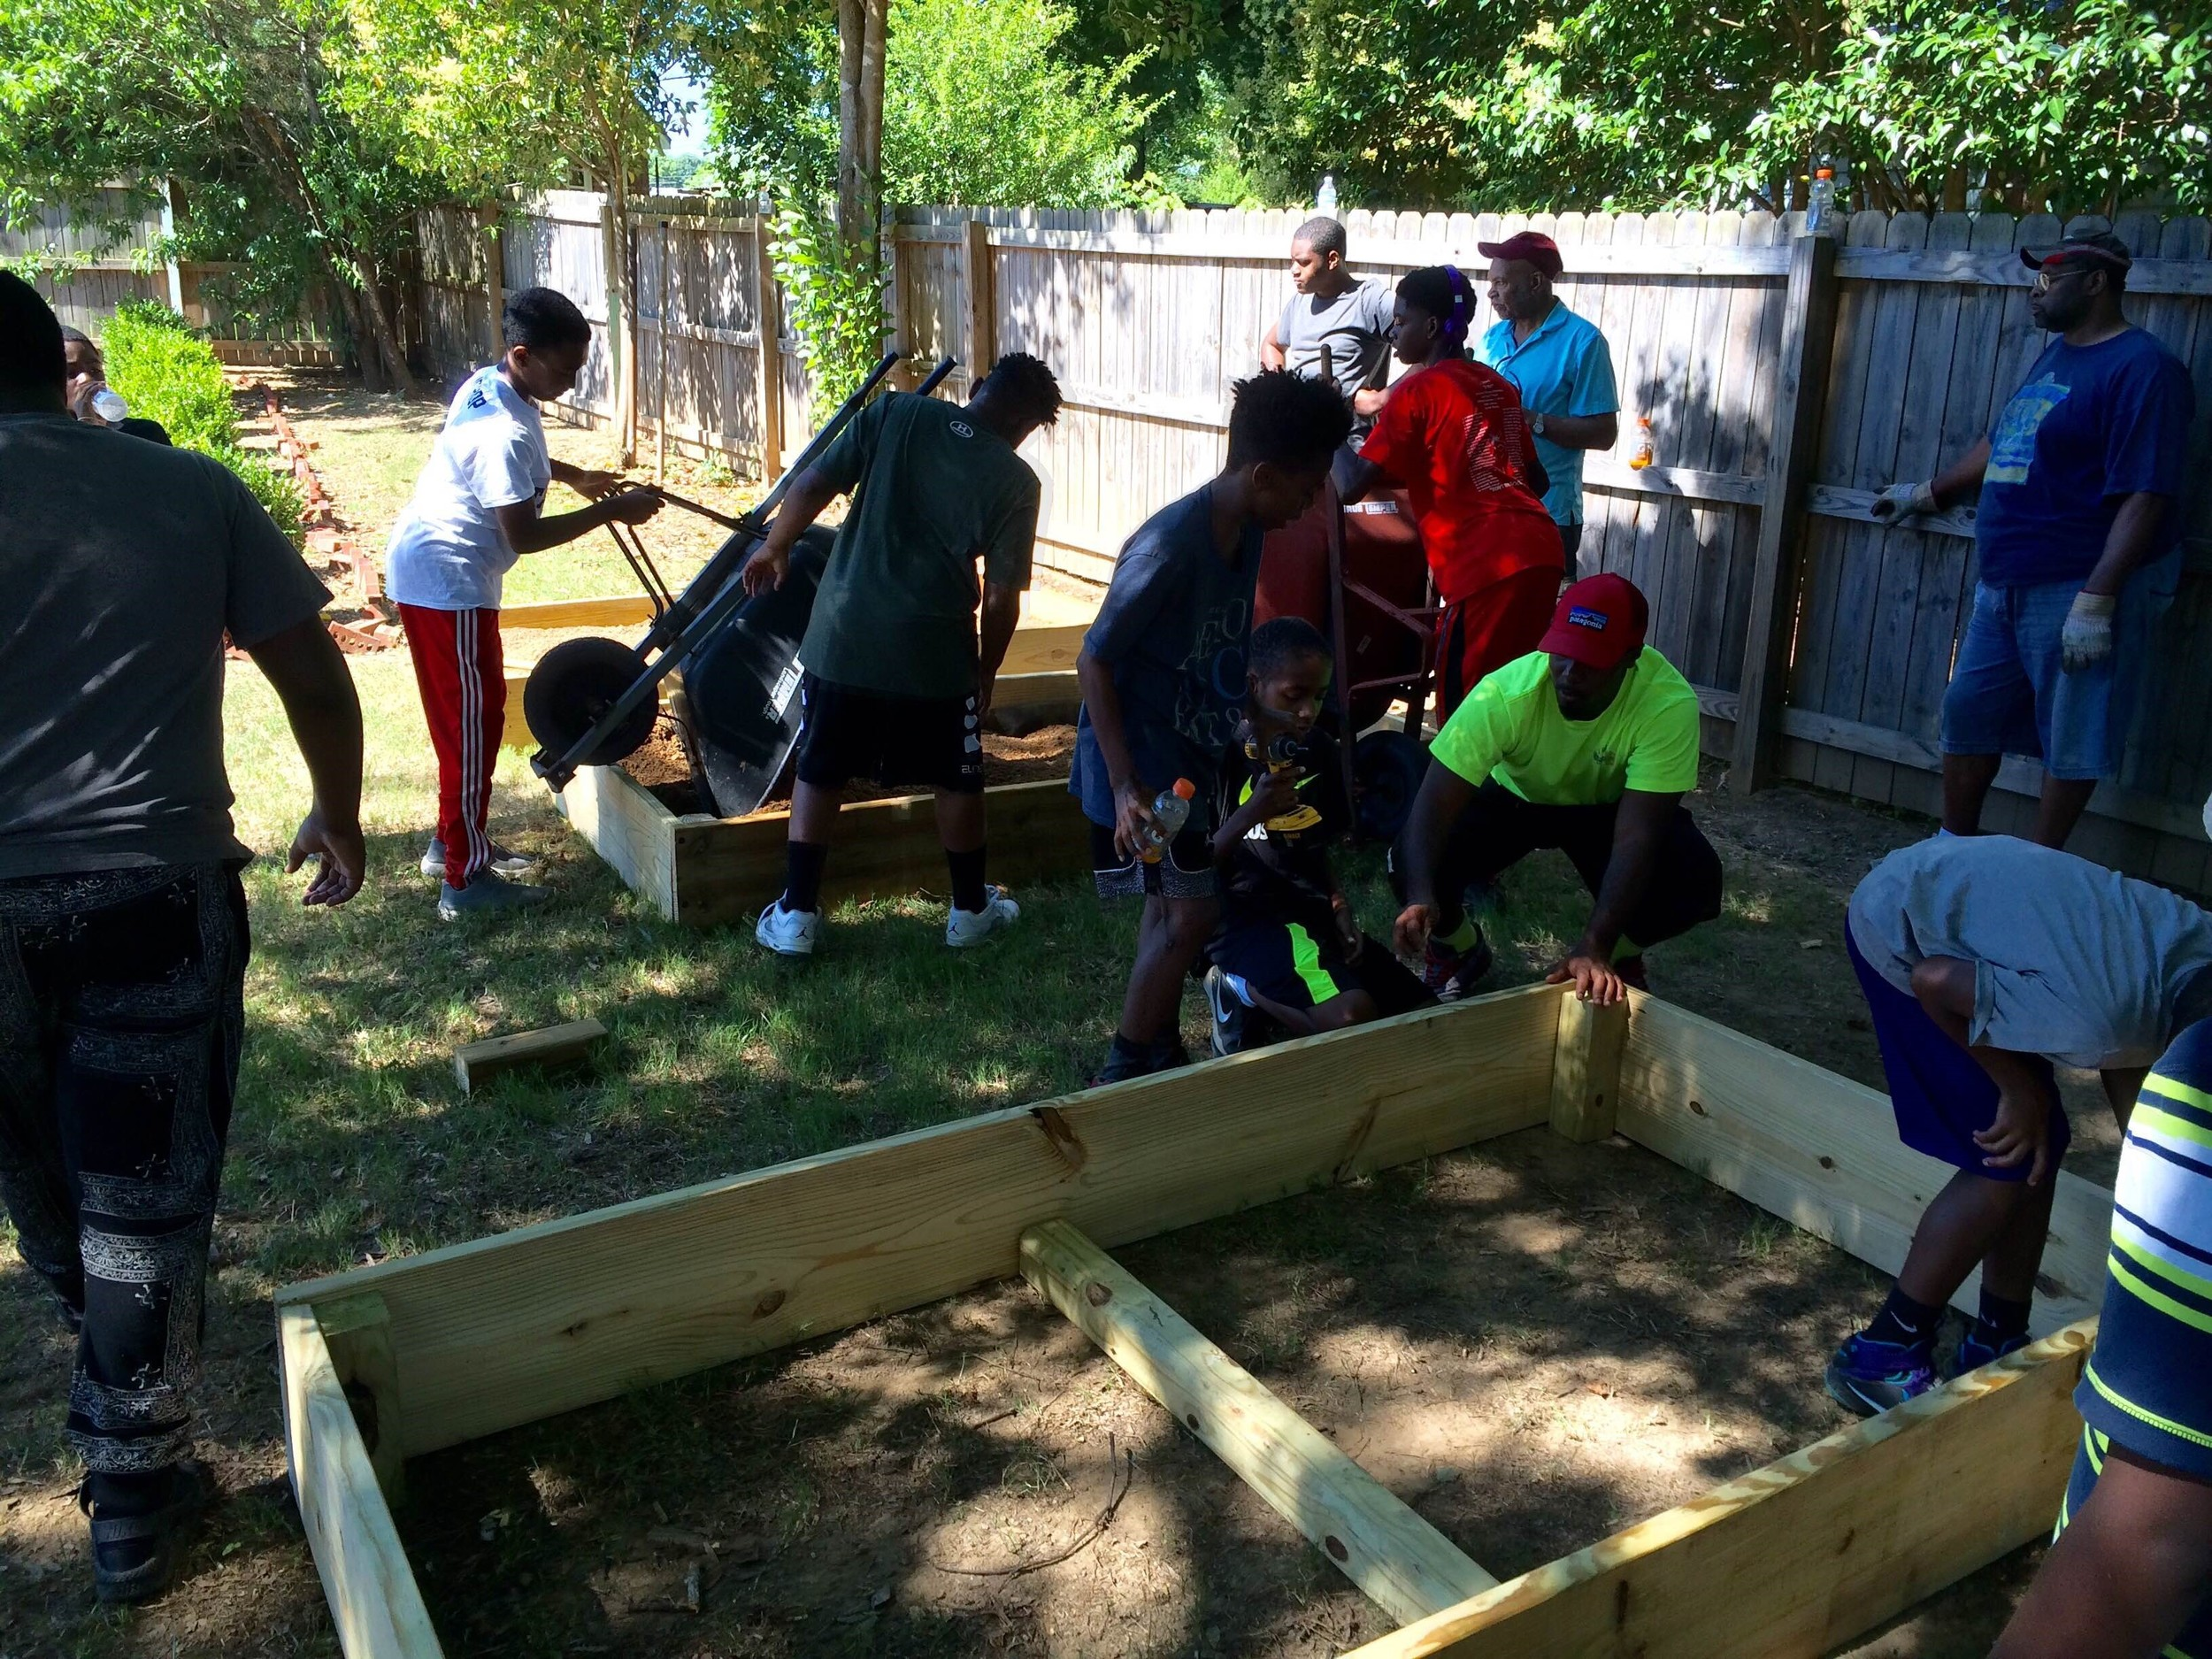 The participants in the Plum Grove program began building a community garden this week.